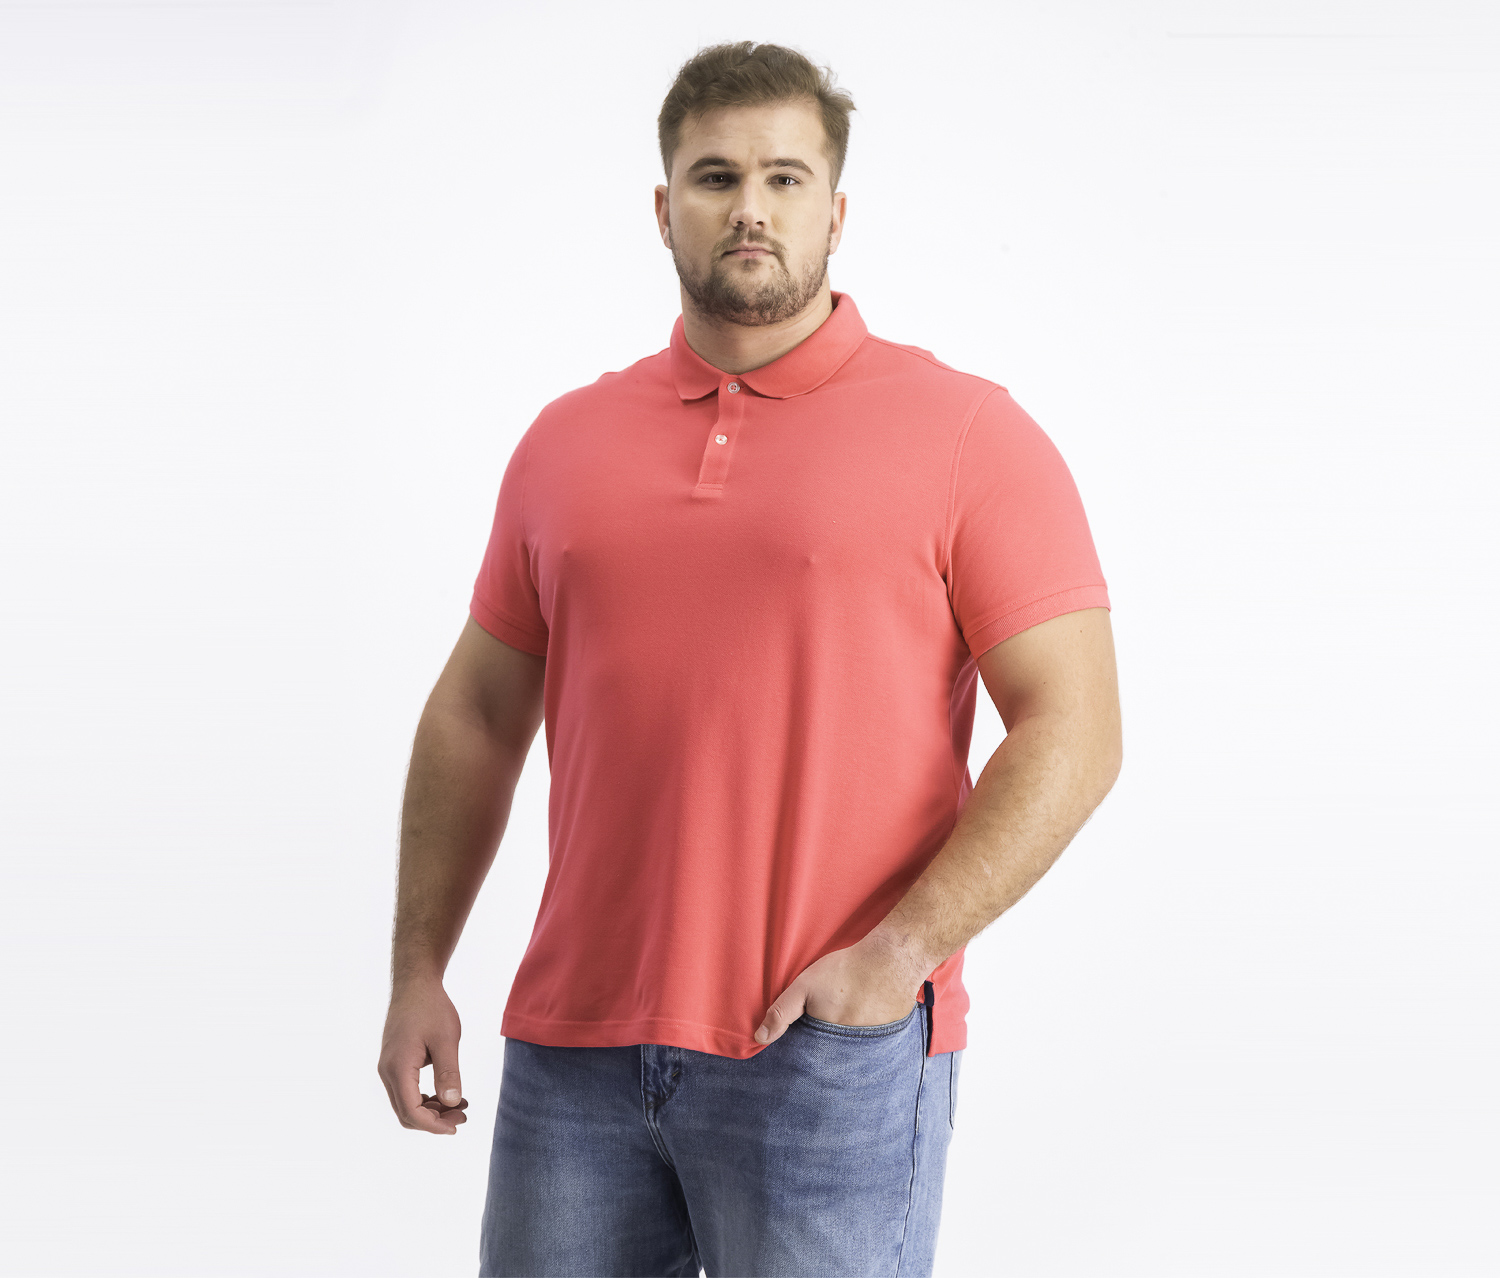 Men's Classic Fit Performance Pique Polo, Radiant Rose